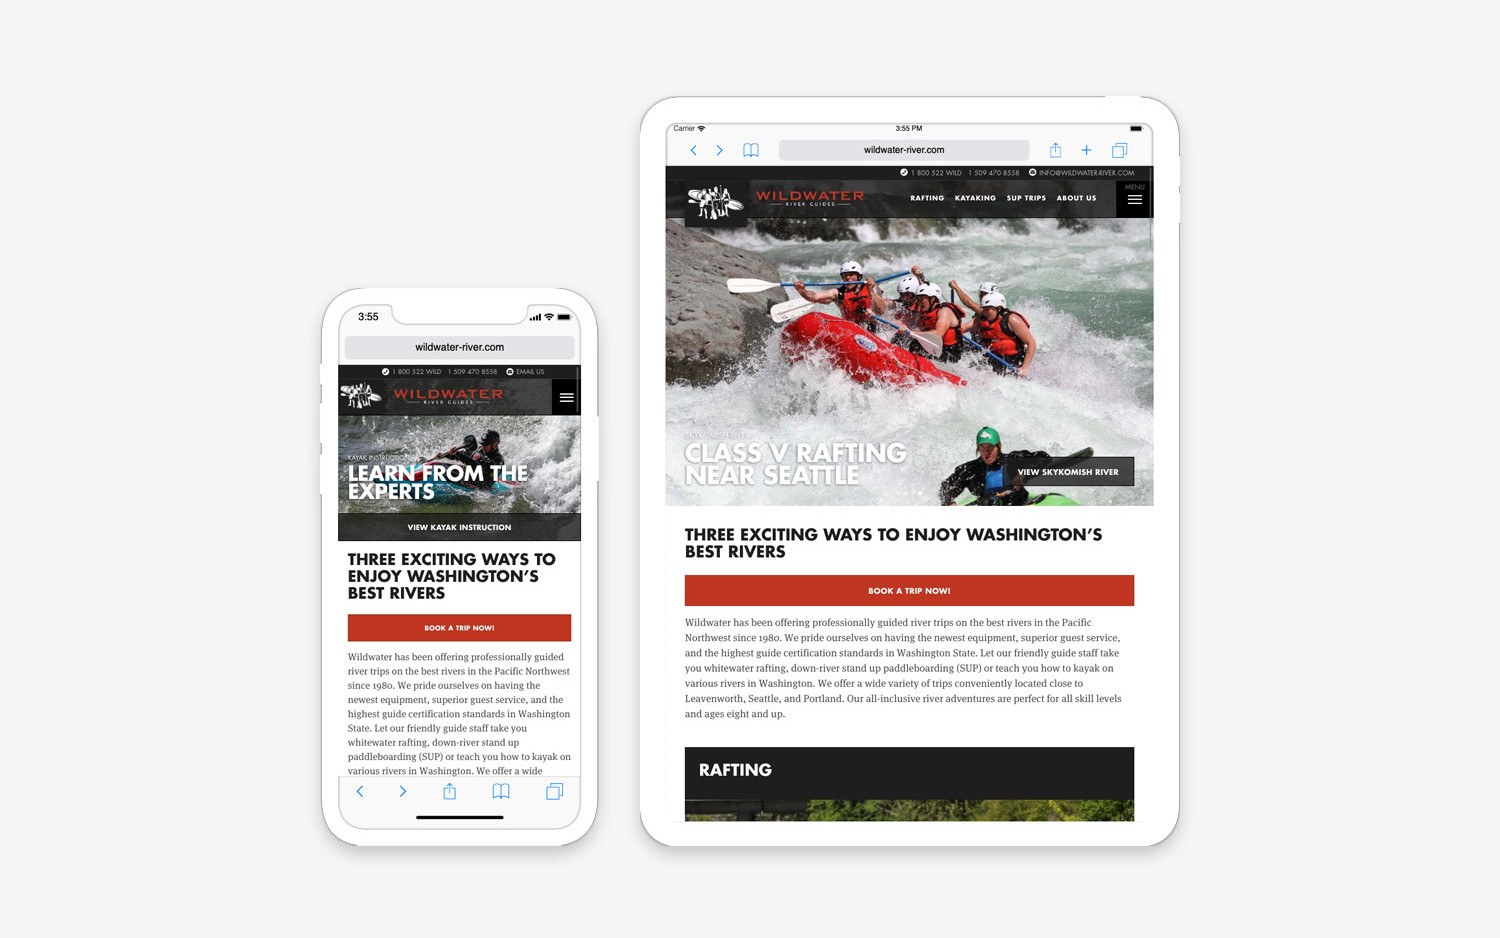 Wildwater River website - mobile/tablet view